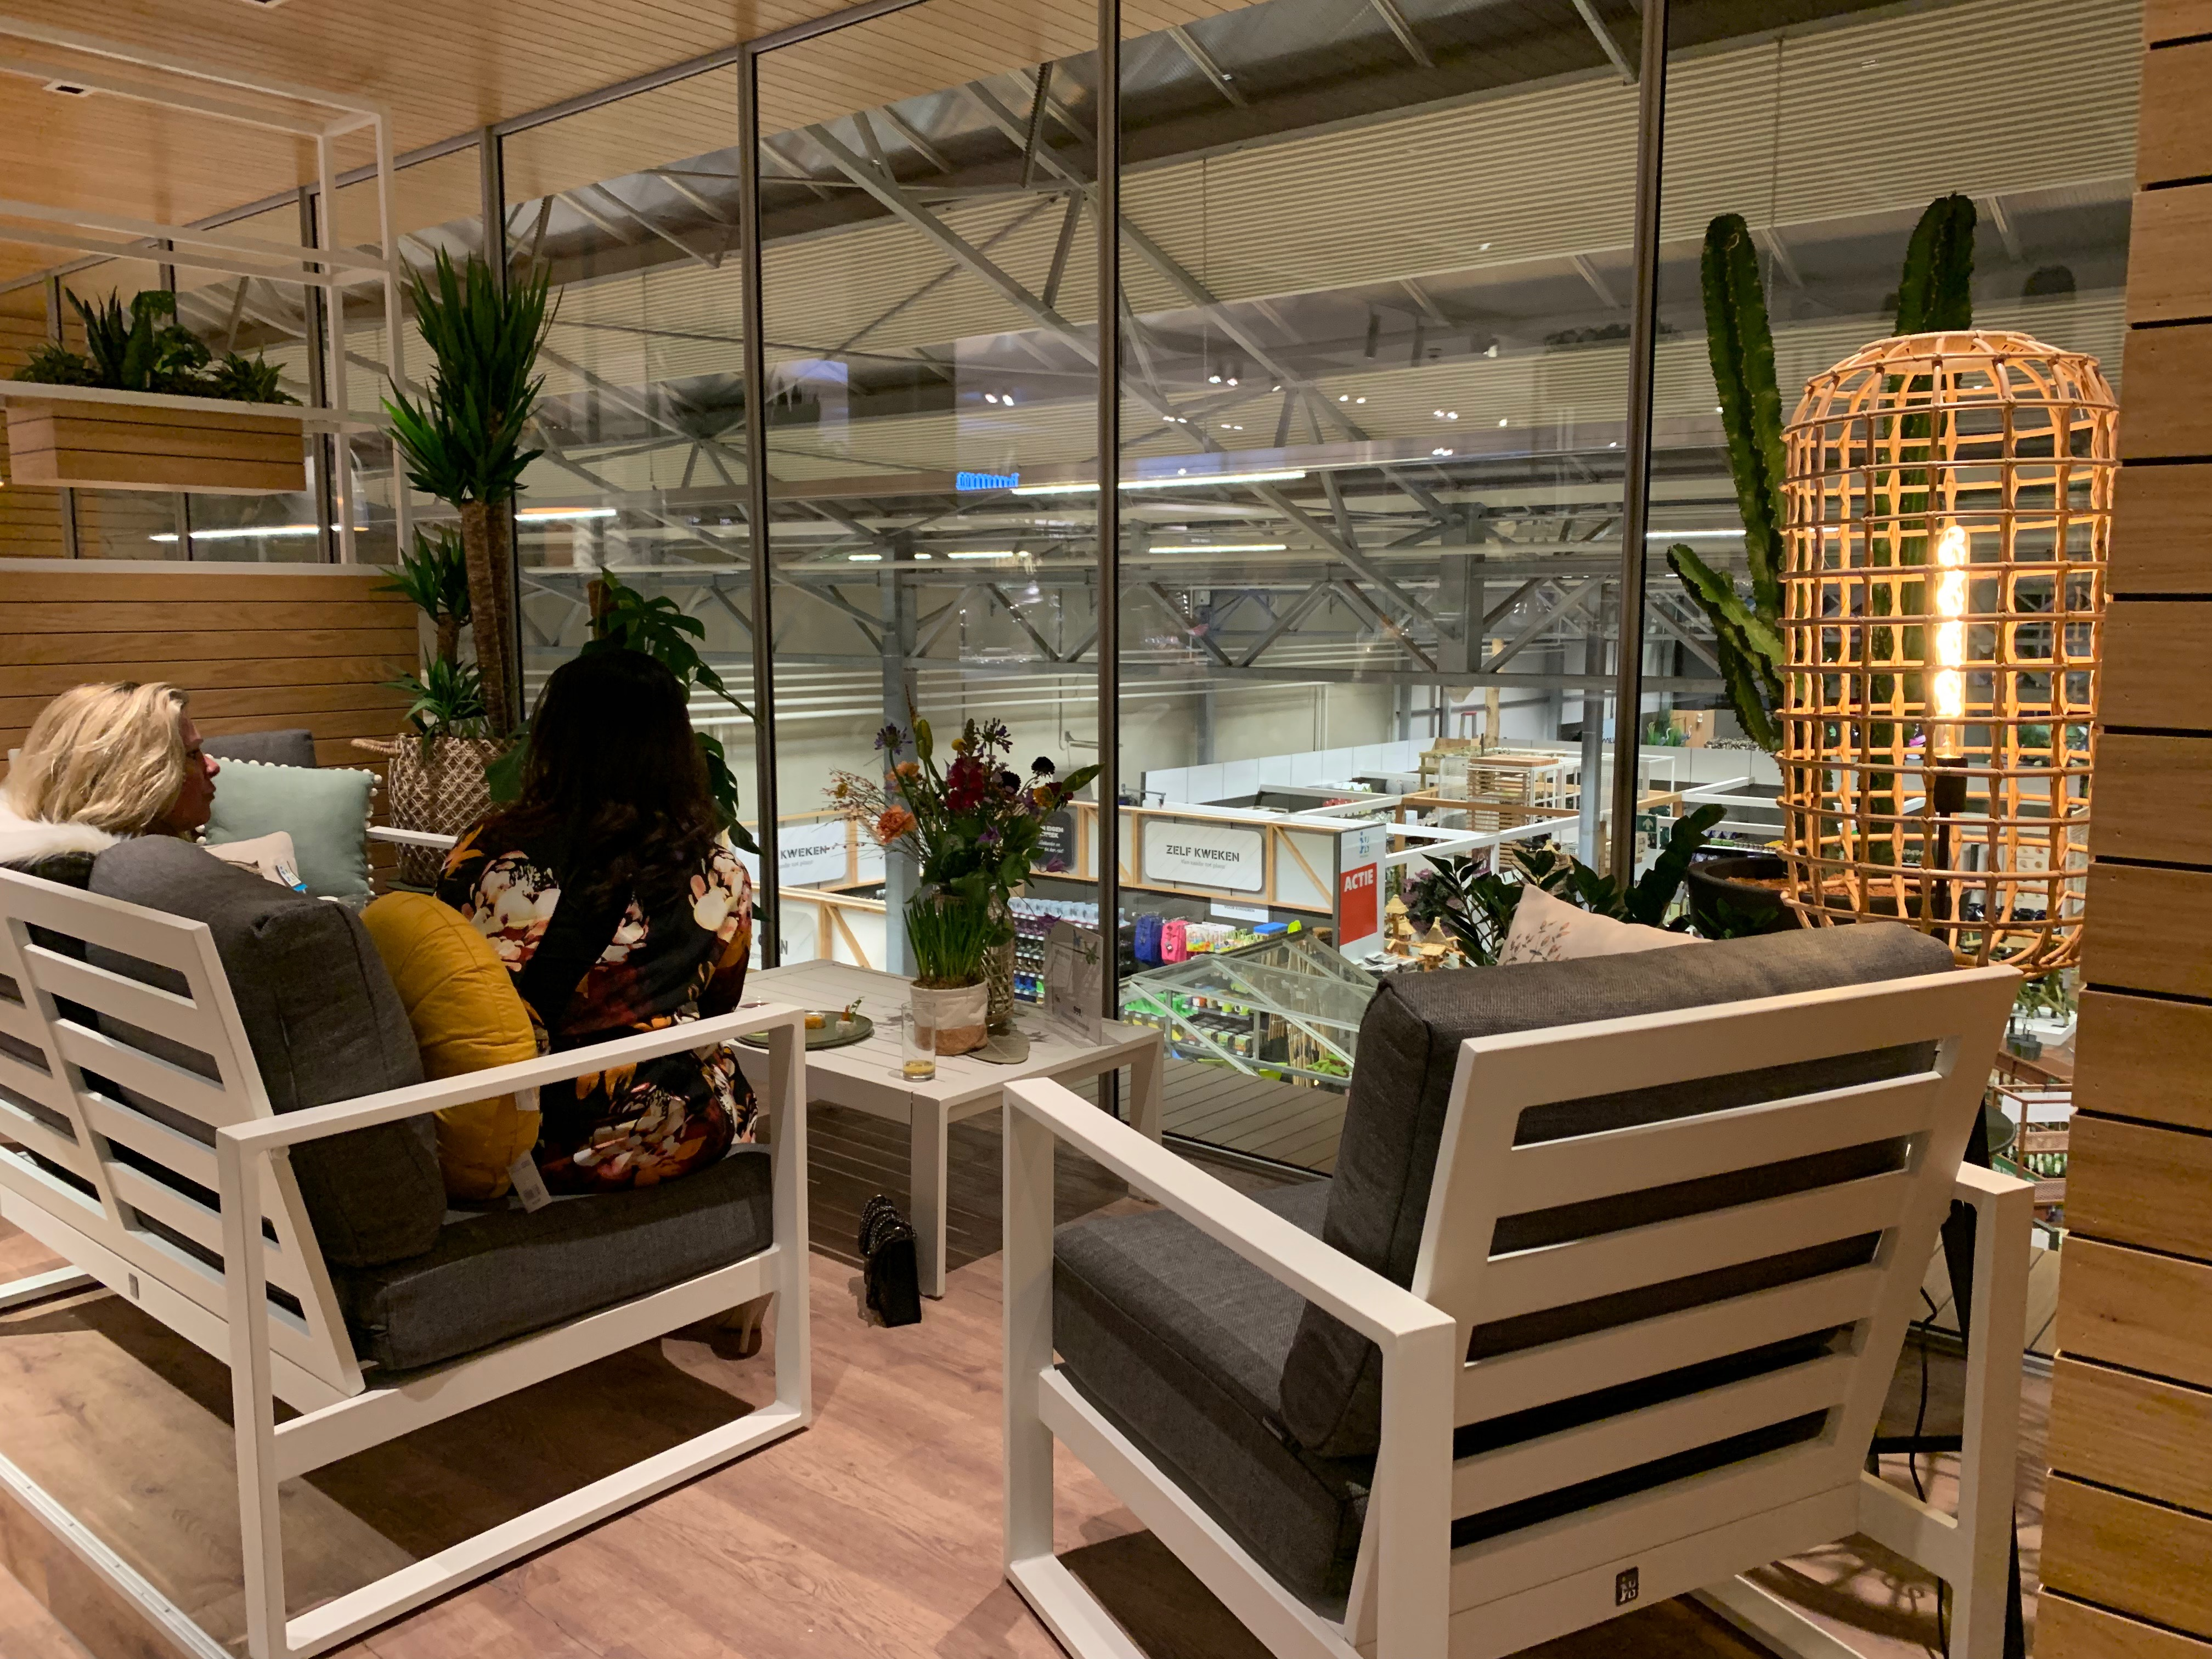 Garden center interior design